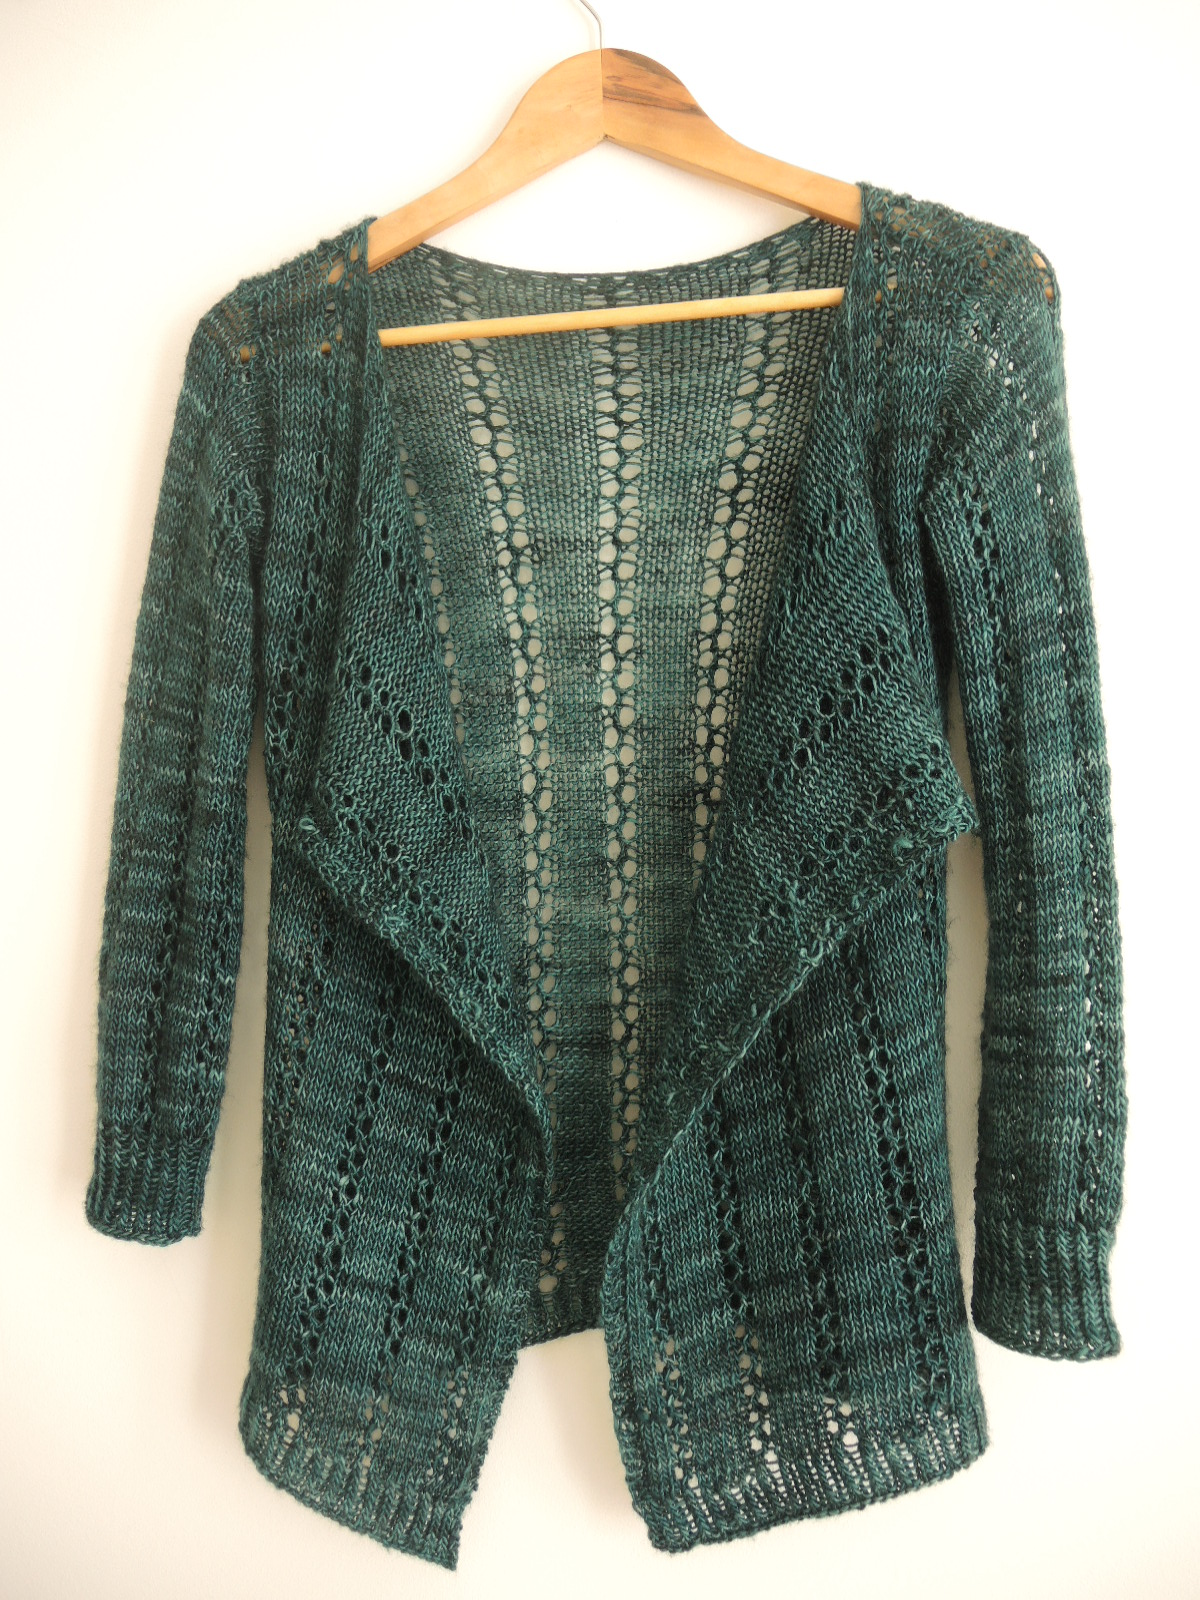 Easy Cardigan Knitting Pattern : littletheorem: Pattern Gallery